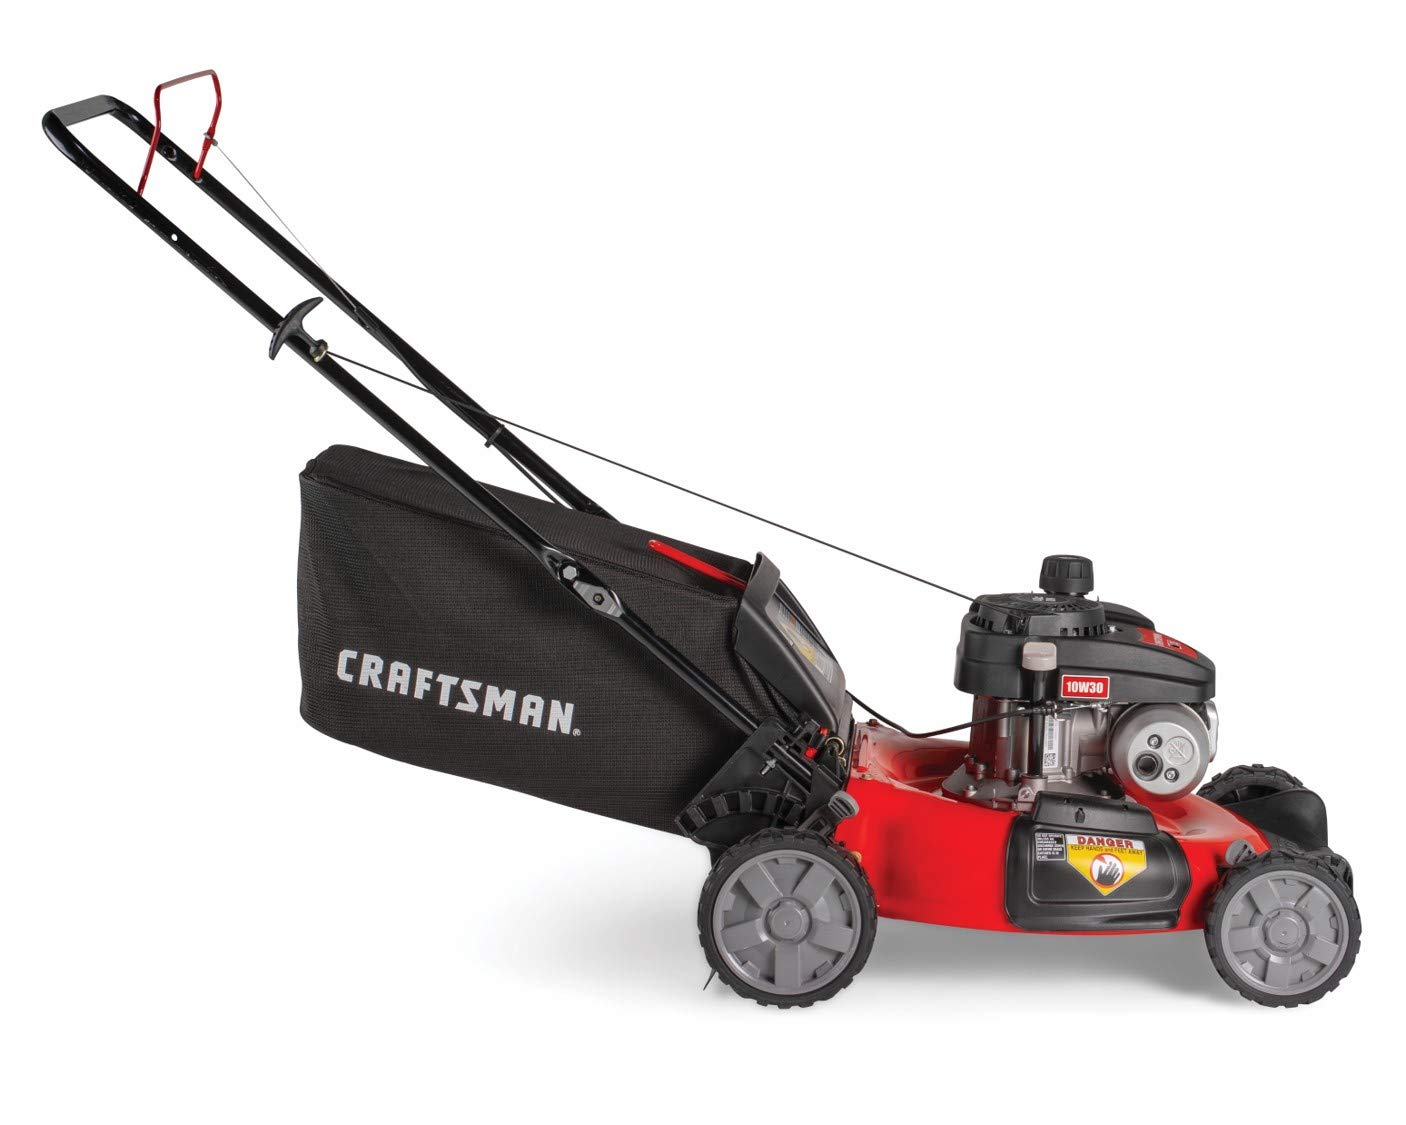 """Craftsman M105 140cc 21-Inch 3-in-1 Gas Powered Push Lawn Mower with Bagger, 1-in, Liberty Red 3 Your purchase includes One Craftsman M105 140cc Gas powered Push Lawn Mower, One bagger and engine oil Lawn Mower width – 21"""" 